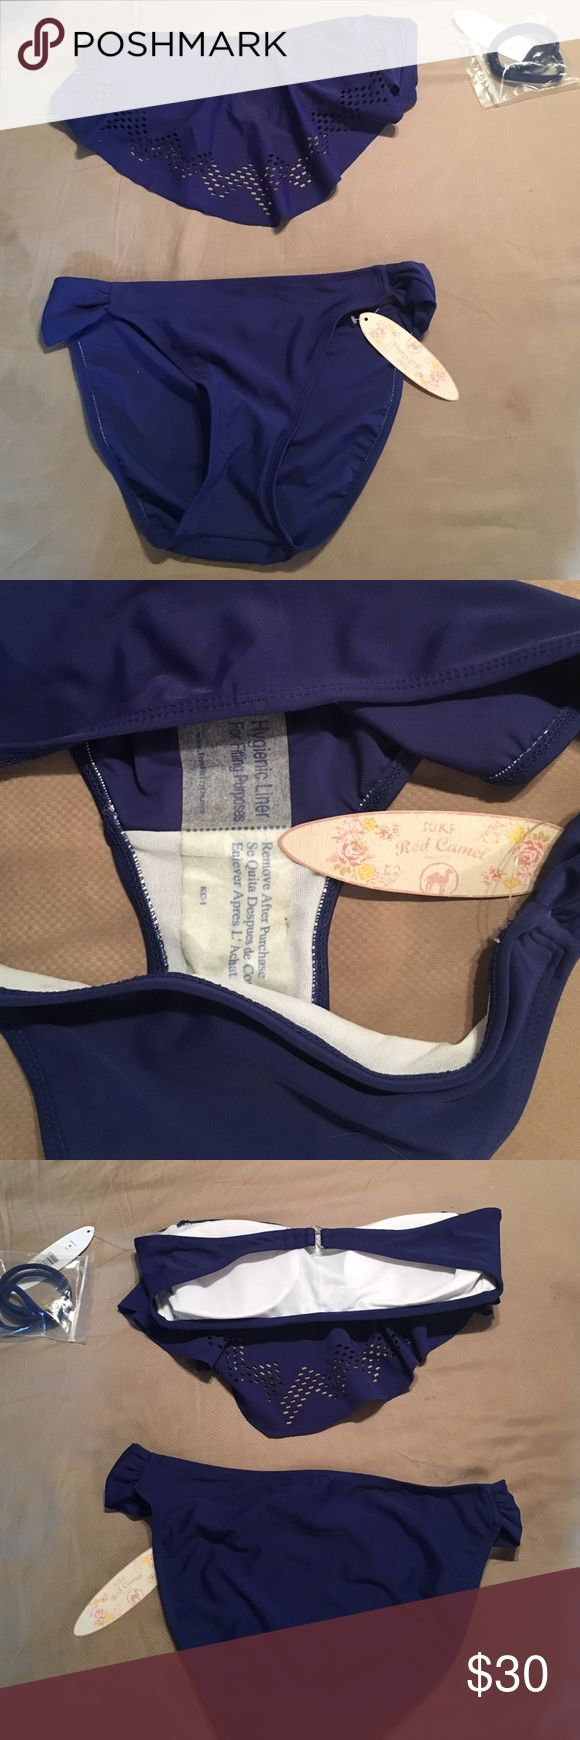 Red Camel bandeau bikini set Medium top and bottoms. Navy blue set with hygiene liner in place, new with tags and detachable strap in baggy Red Camel Swim Bikinis